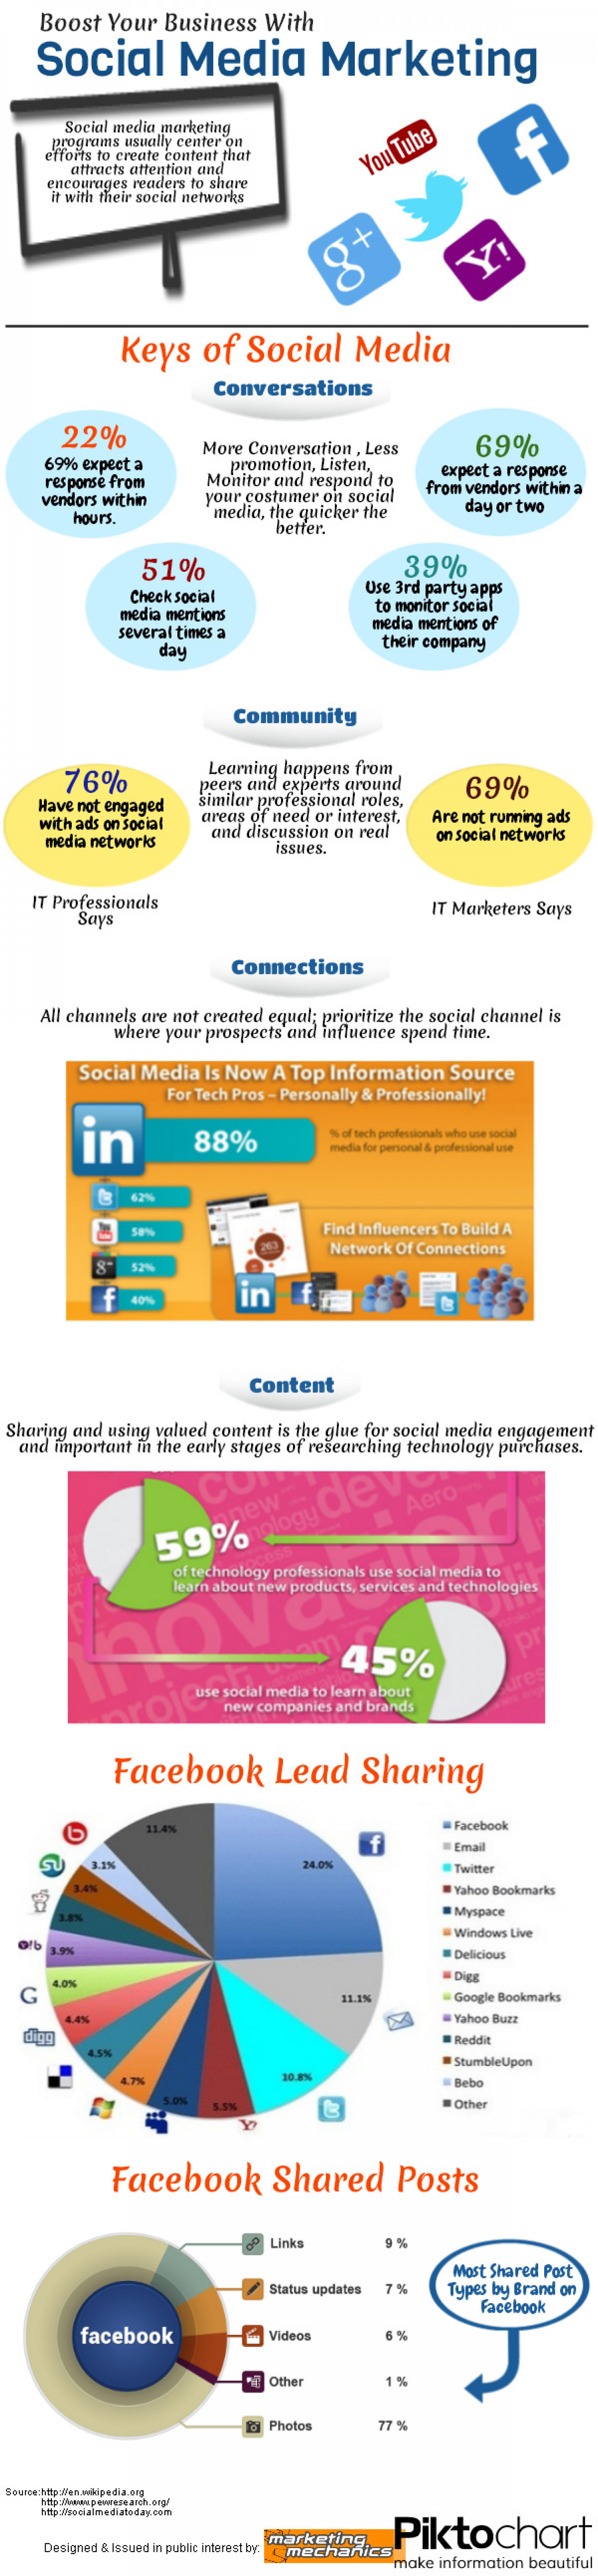 Boost Your Business With Social Media Marketing Infographic